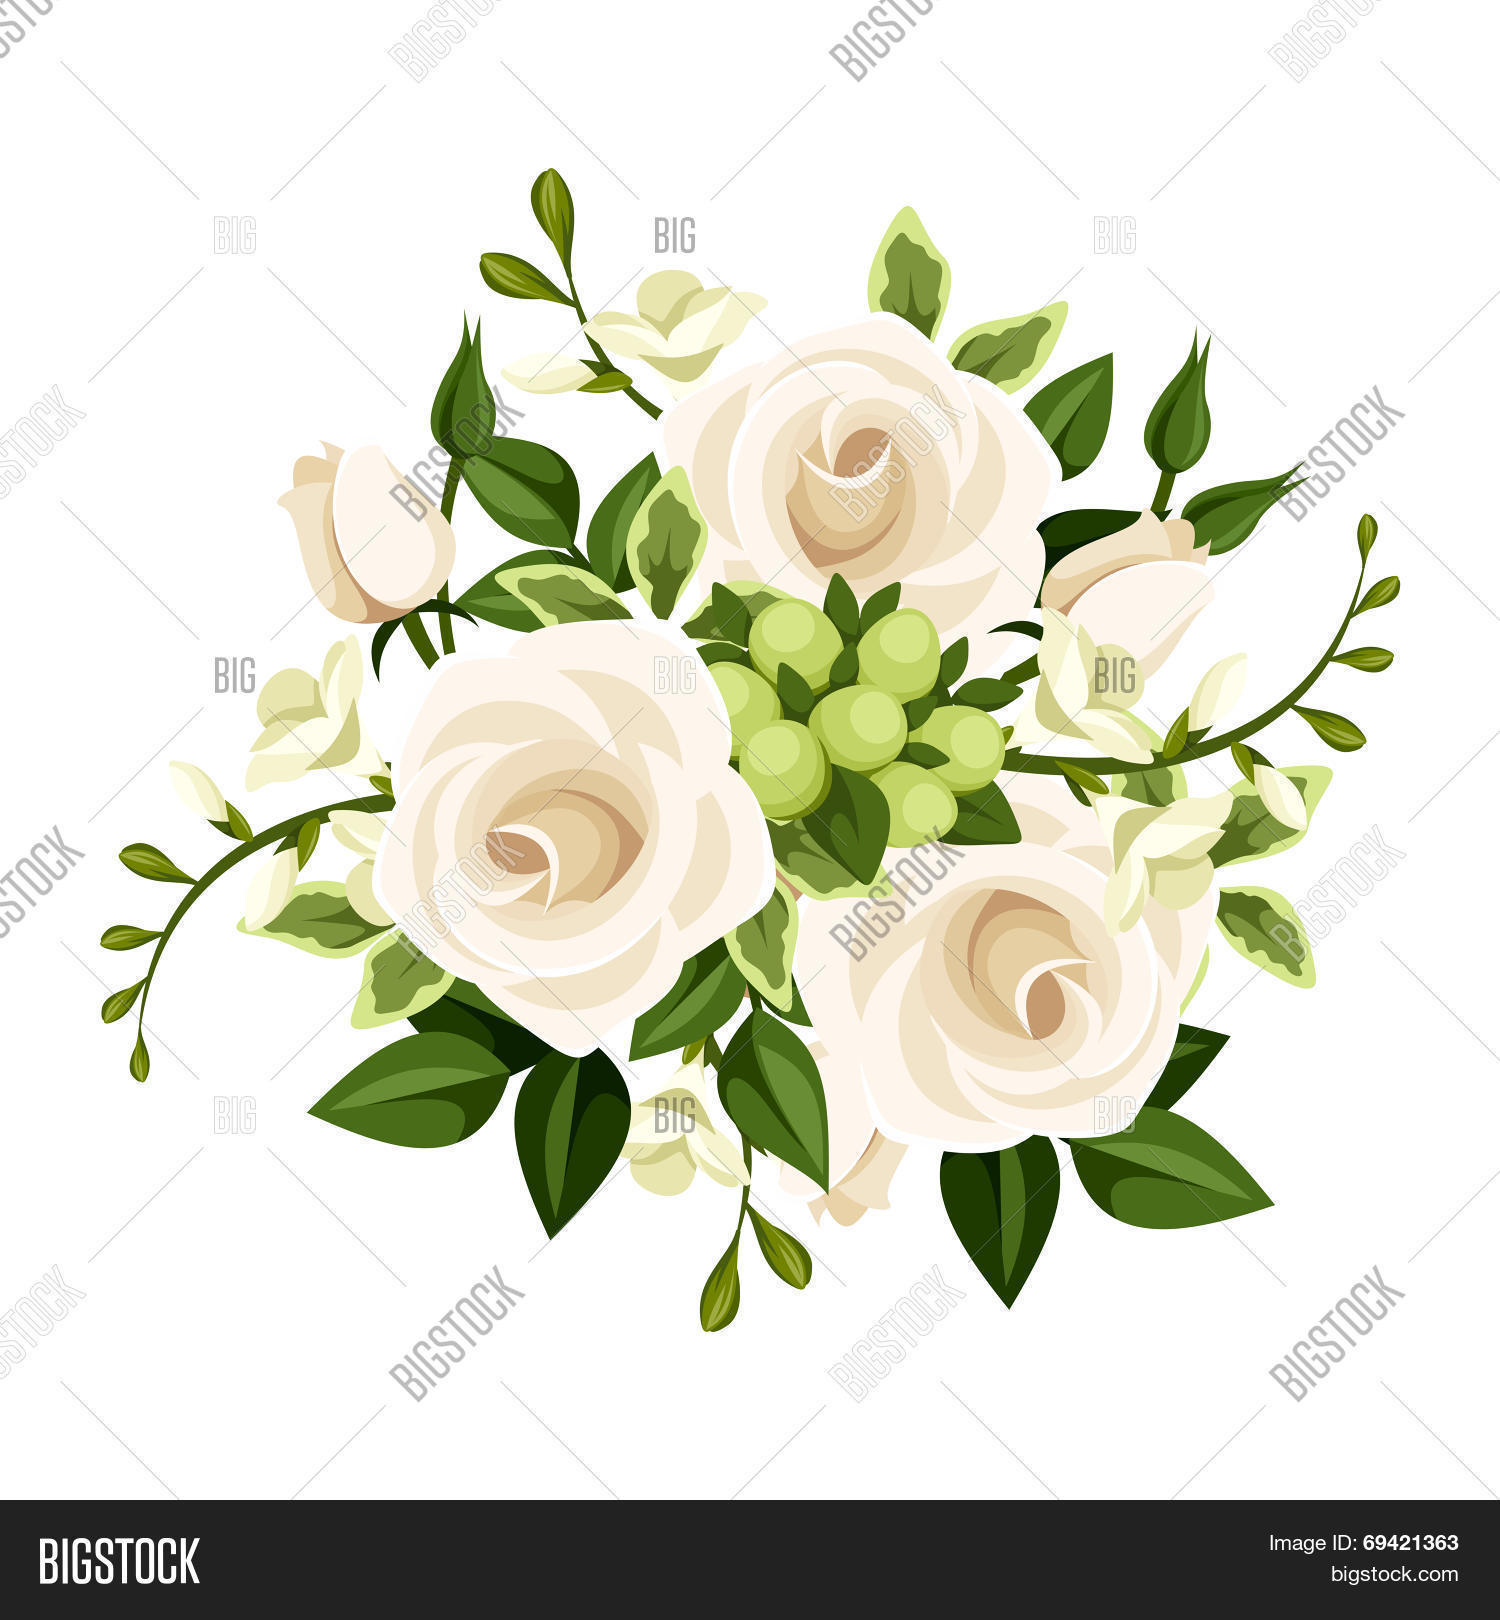 Bouquet white roses vector photo free trial bigstock bouquet of white roses and freesia flowers vector illustration izmirmasajfo